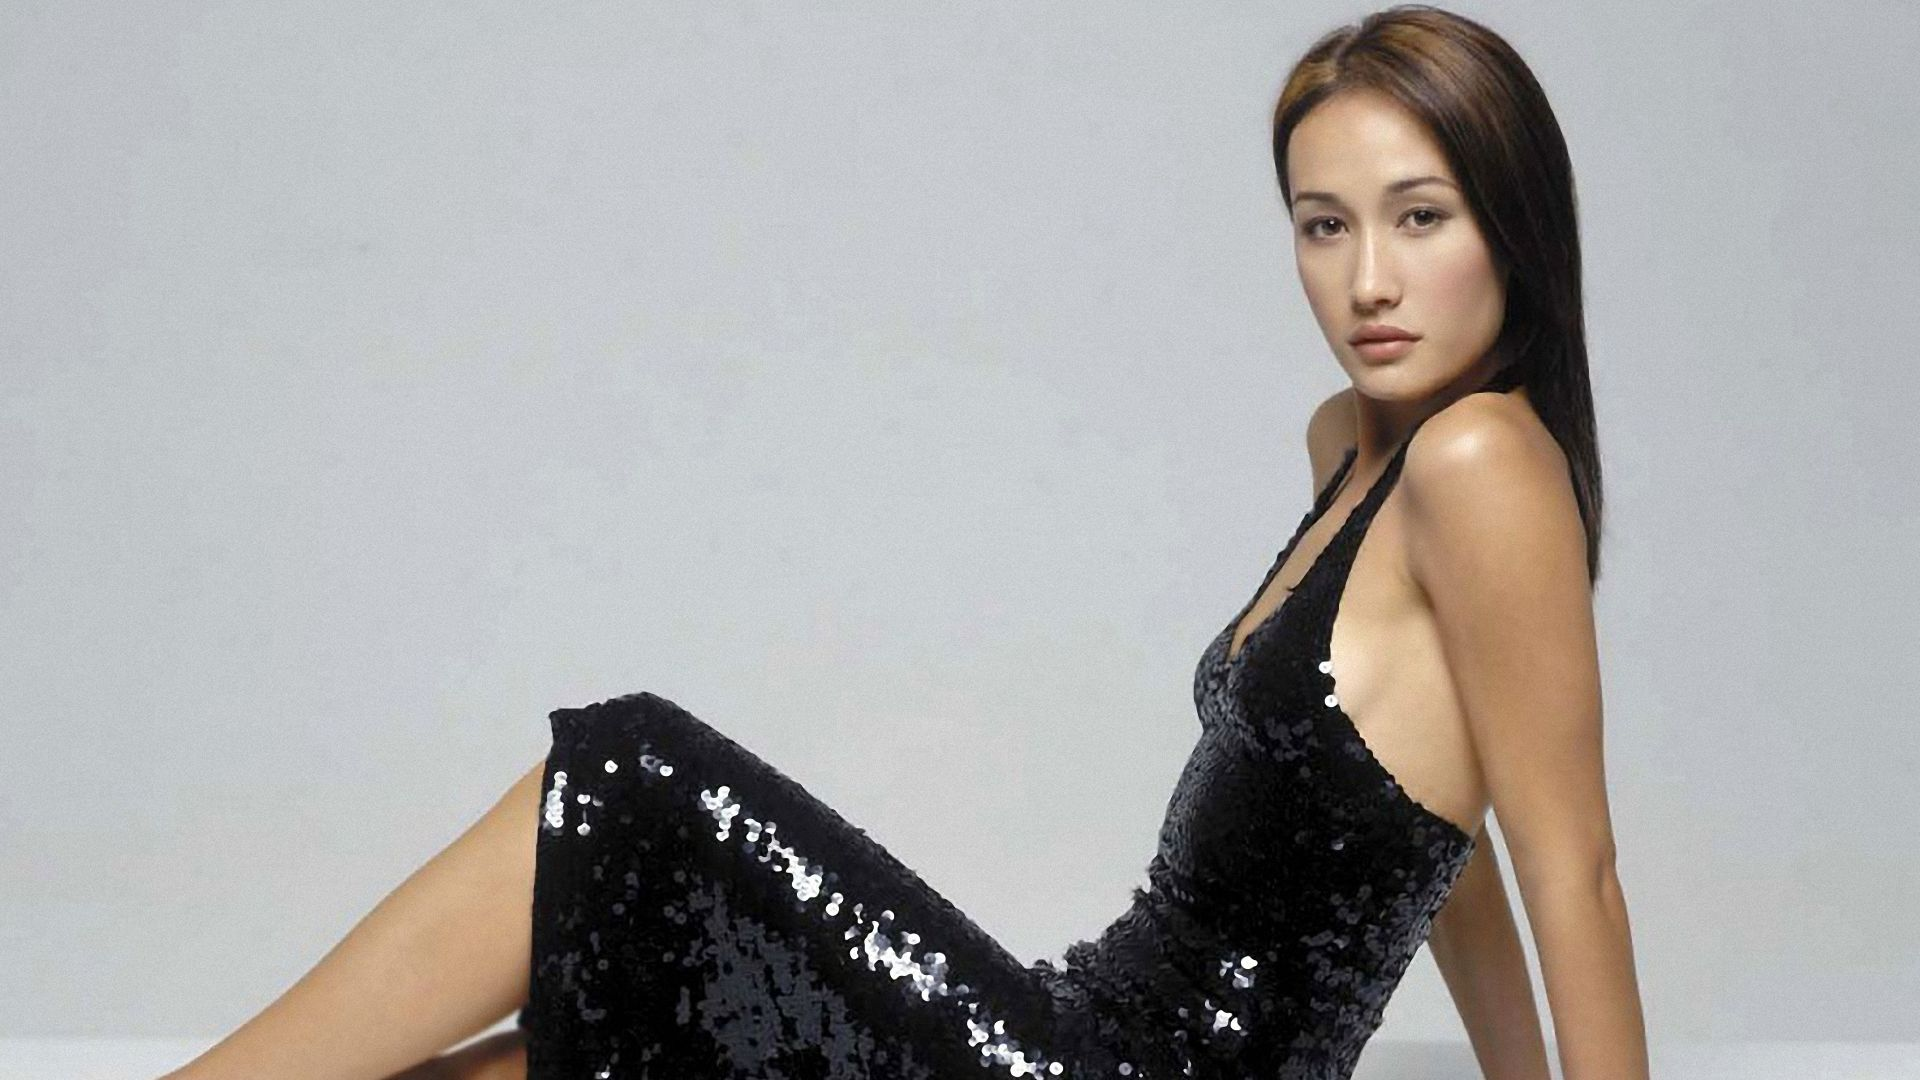 Quiet Girl Wallpaper Download Maggie Q Hd Wallpapers For Desktop Download